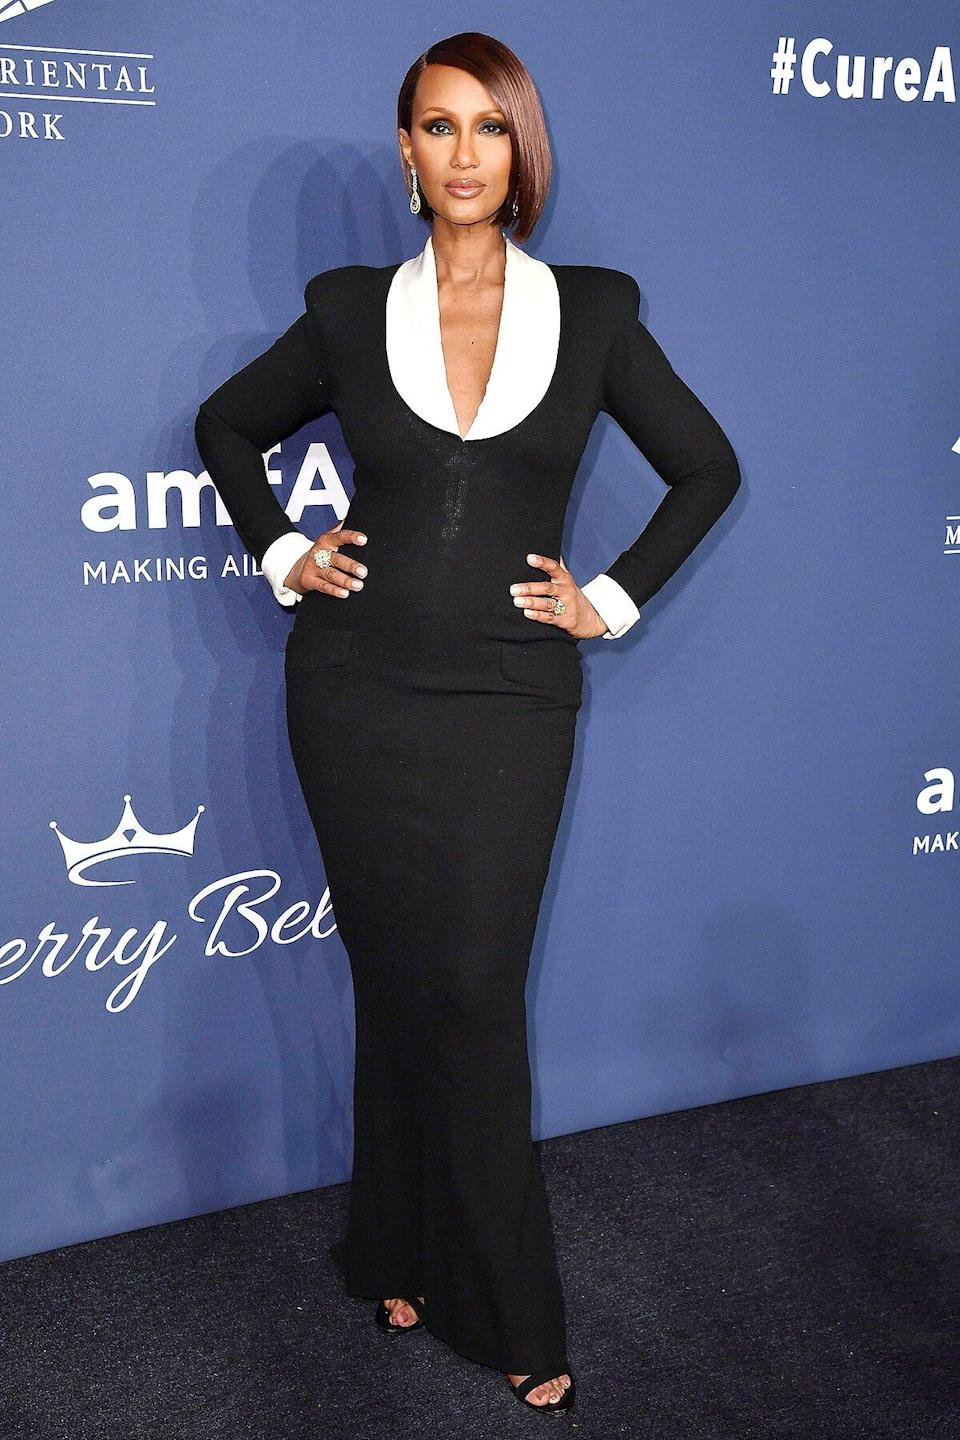 US-Somali fashion model Iman attends the amfAR Gala New York at Cipriani Wall Street in New York City on February 5, 2020